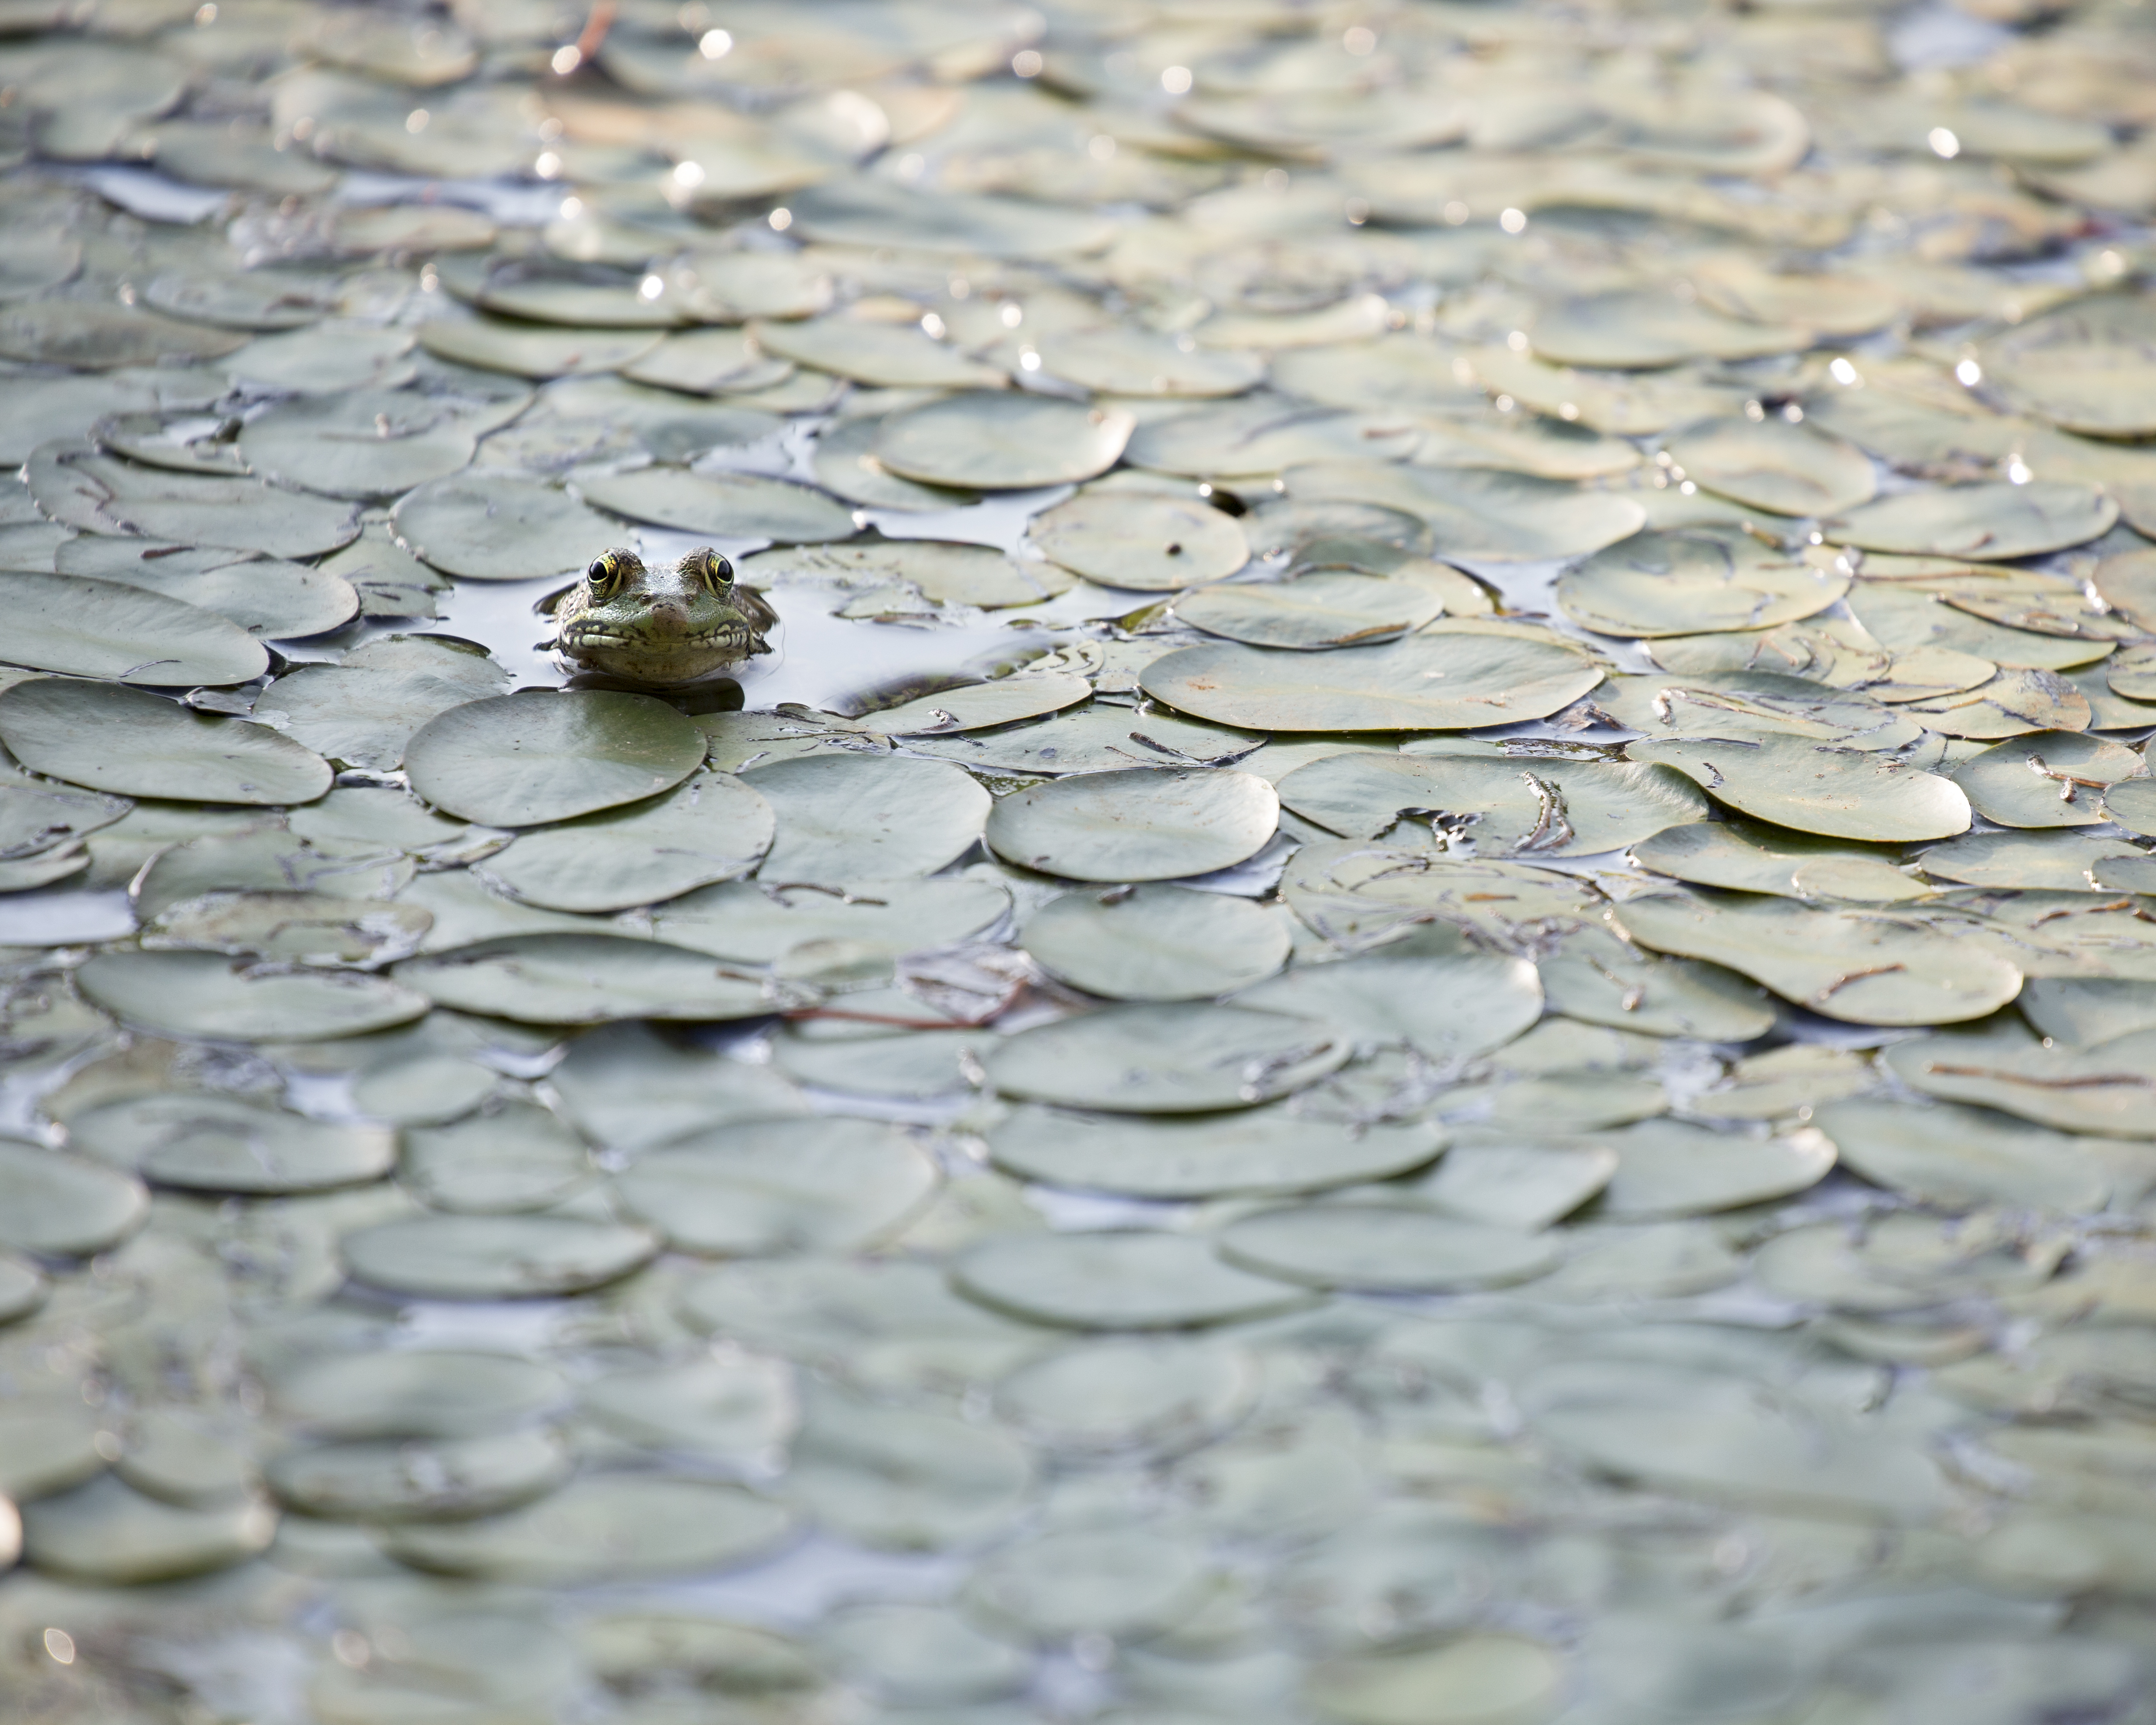 Portrait of a Frog in a Pond